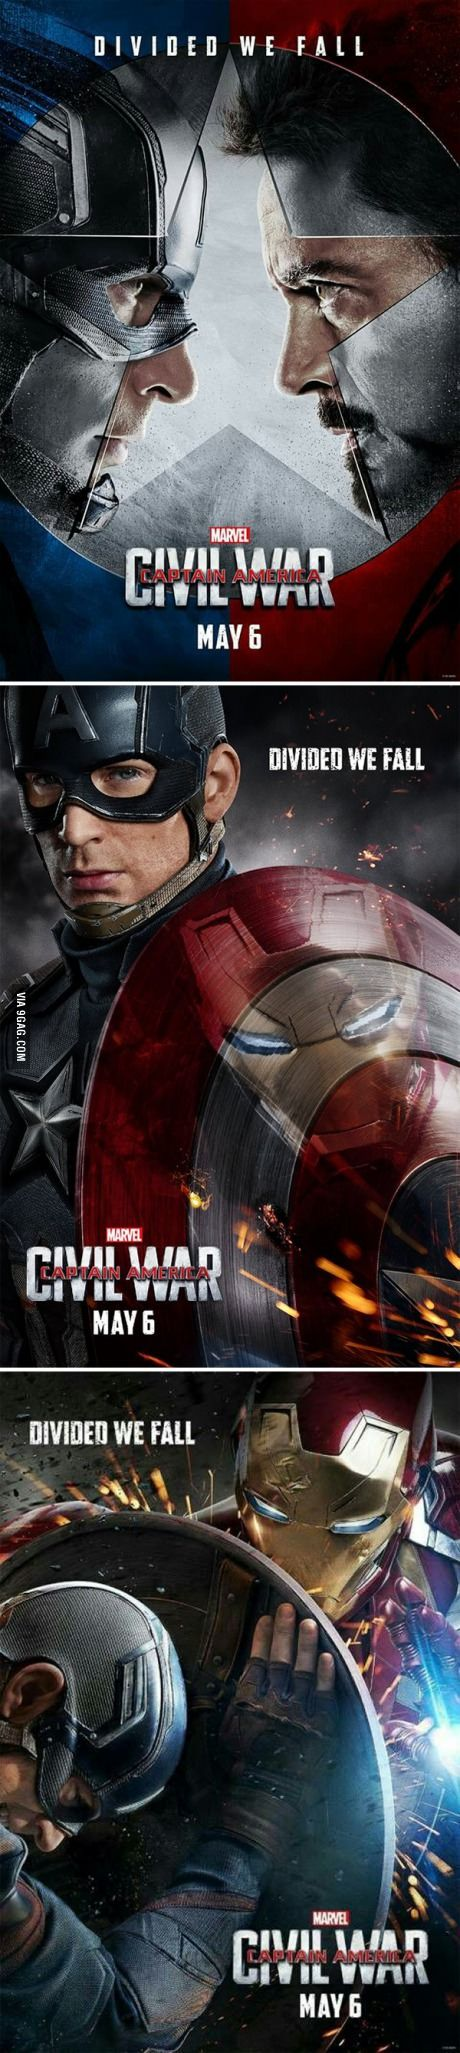 New Captain America: Civil War Posters! I have a feeling this movie is going to rip me to pieces